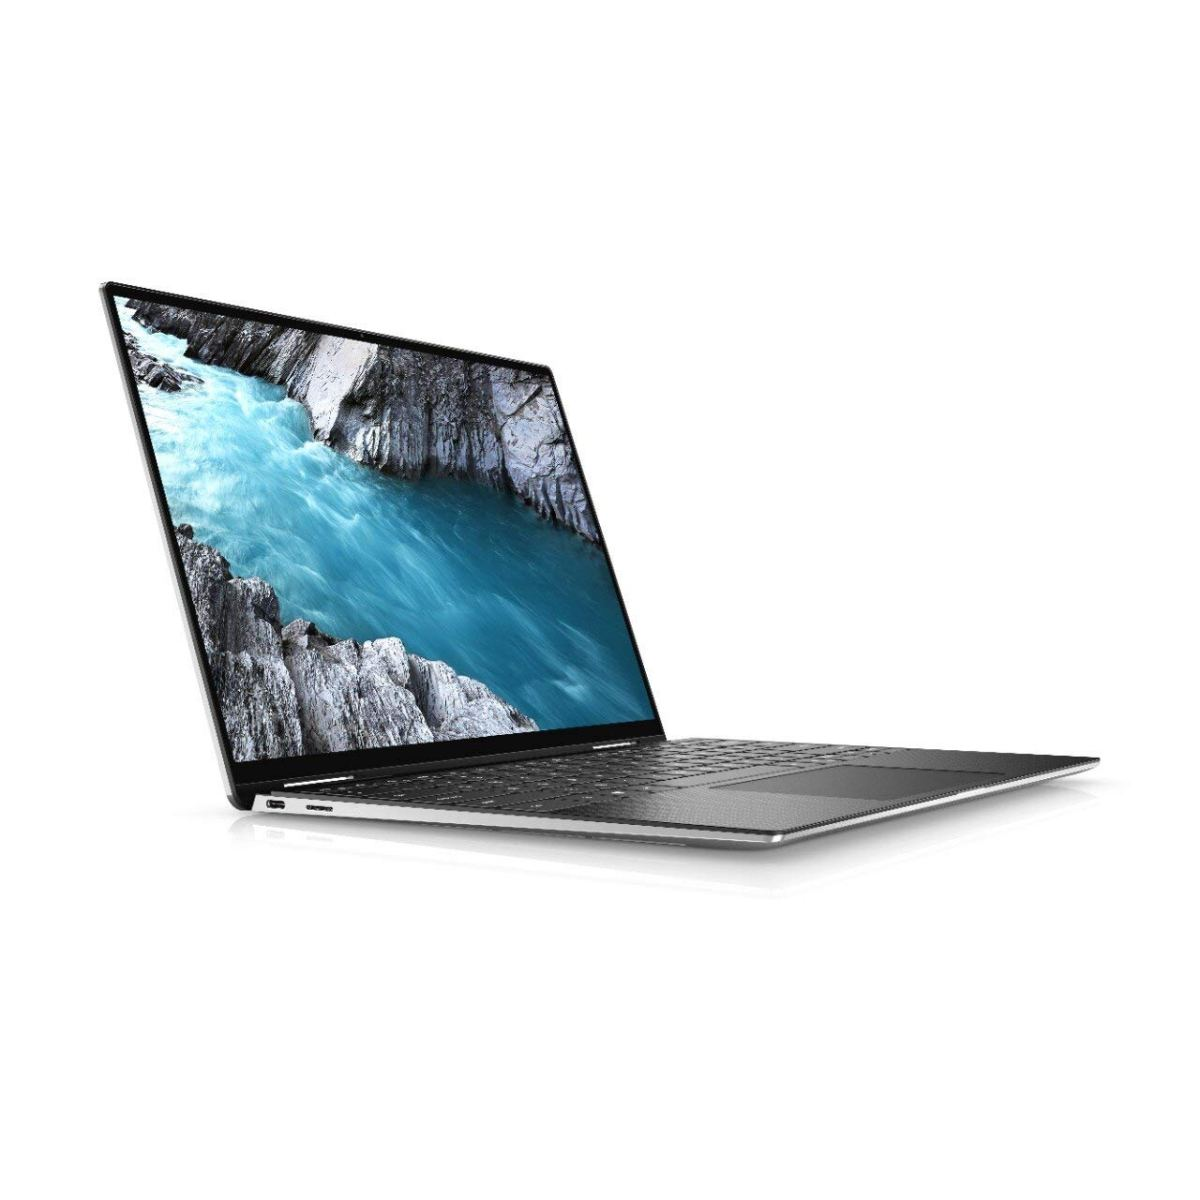 Dell XPS 13 - Best Laptop Under 1,25,000 (Hex ToiD Top Picks Laptop)